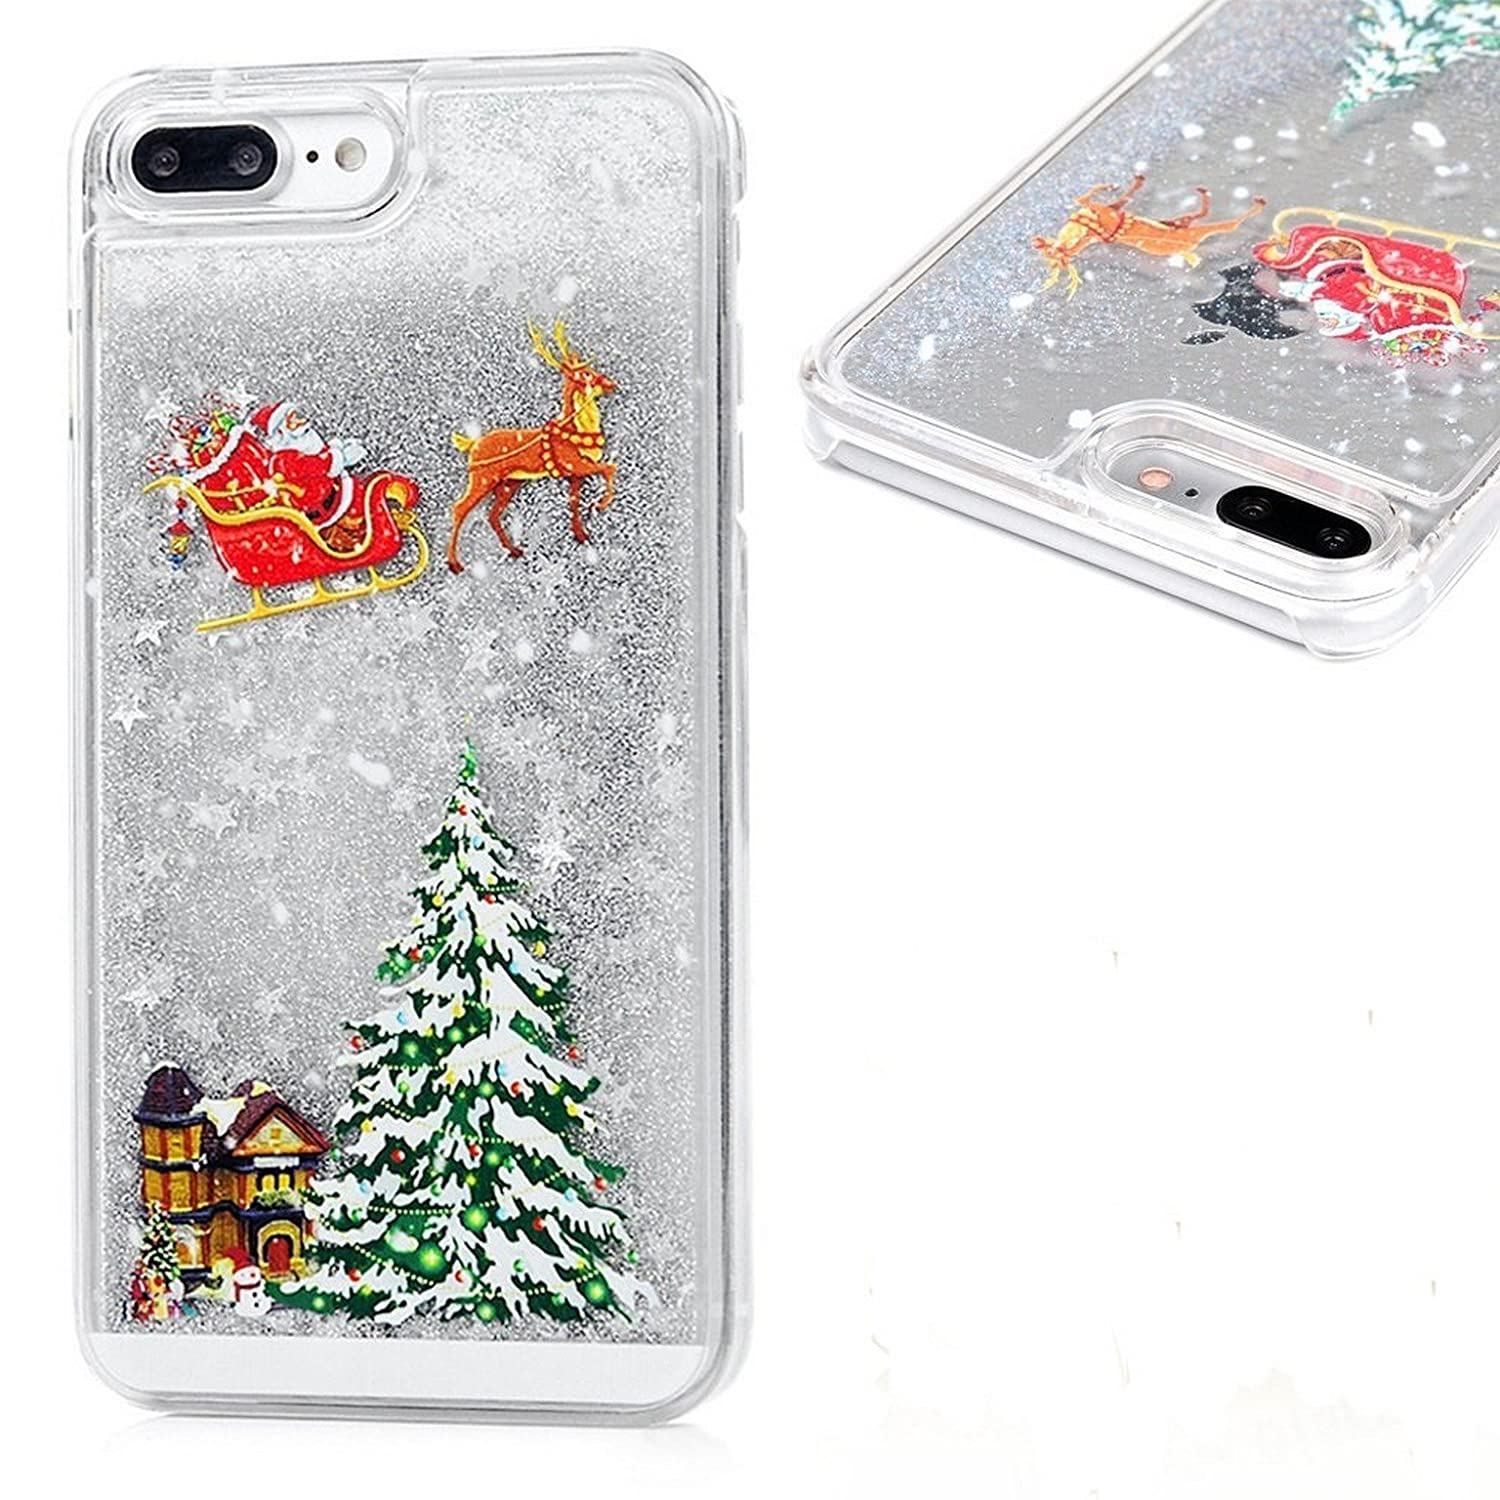 Christmas Phone Case Iphone 7.Christmas Phone Case For Iphone 7 Plus 8 Plus 5 5 Sparkly Bling Stars And Glitter Flowing Liquid Water Aqua Movable With Christmas Tree Santa Claus